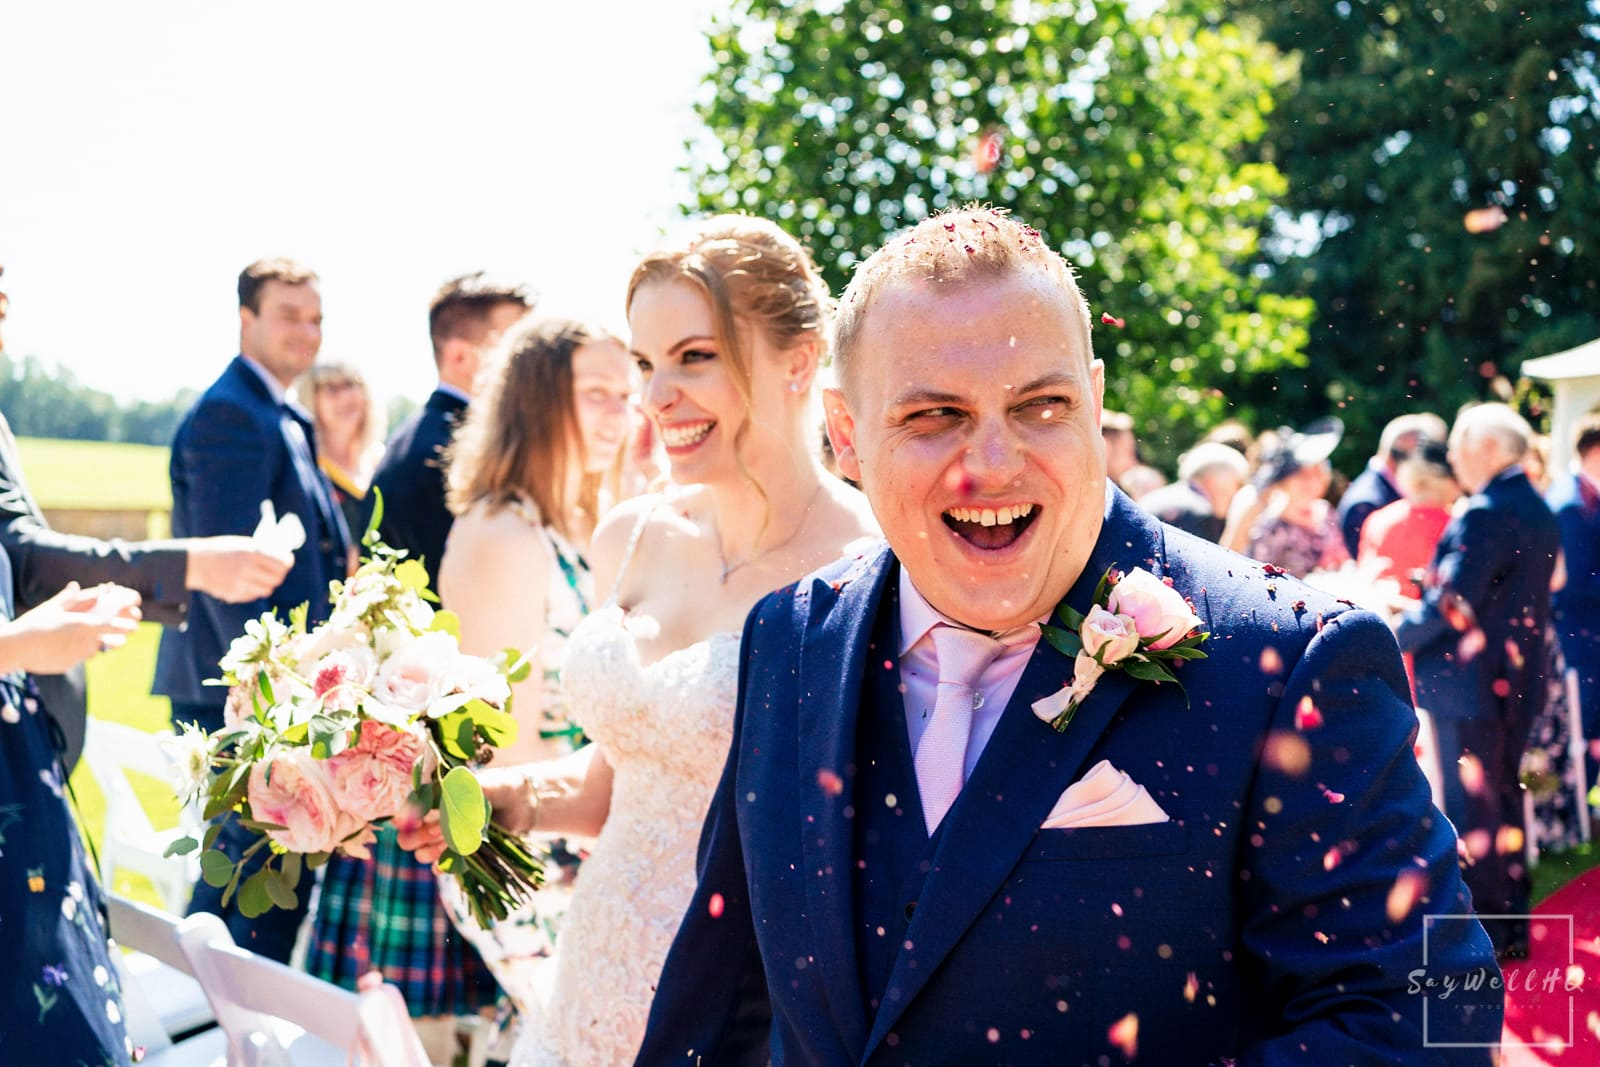 Prestwold Hall Wedding Photography + Bride and groom getting covered in confetti after their outdoor wedding ceremony